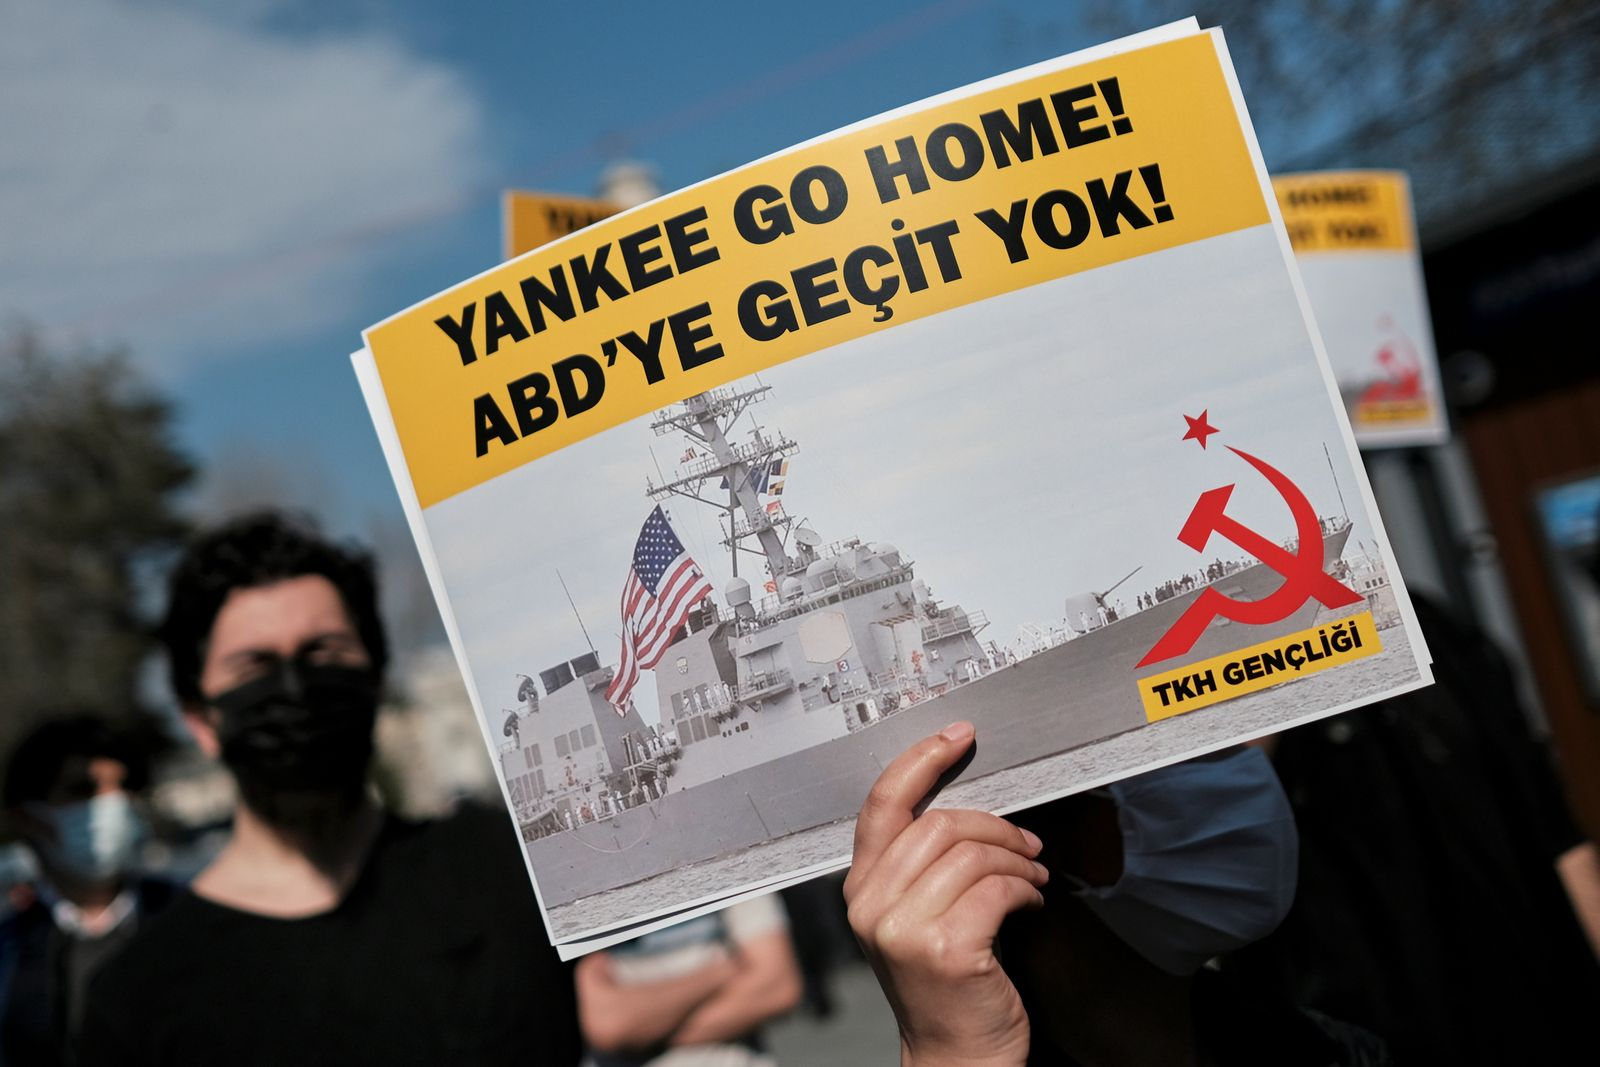 Protest against a U.S. plans to send warships to the Black Sea, in Istanbul